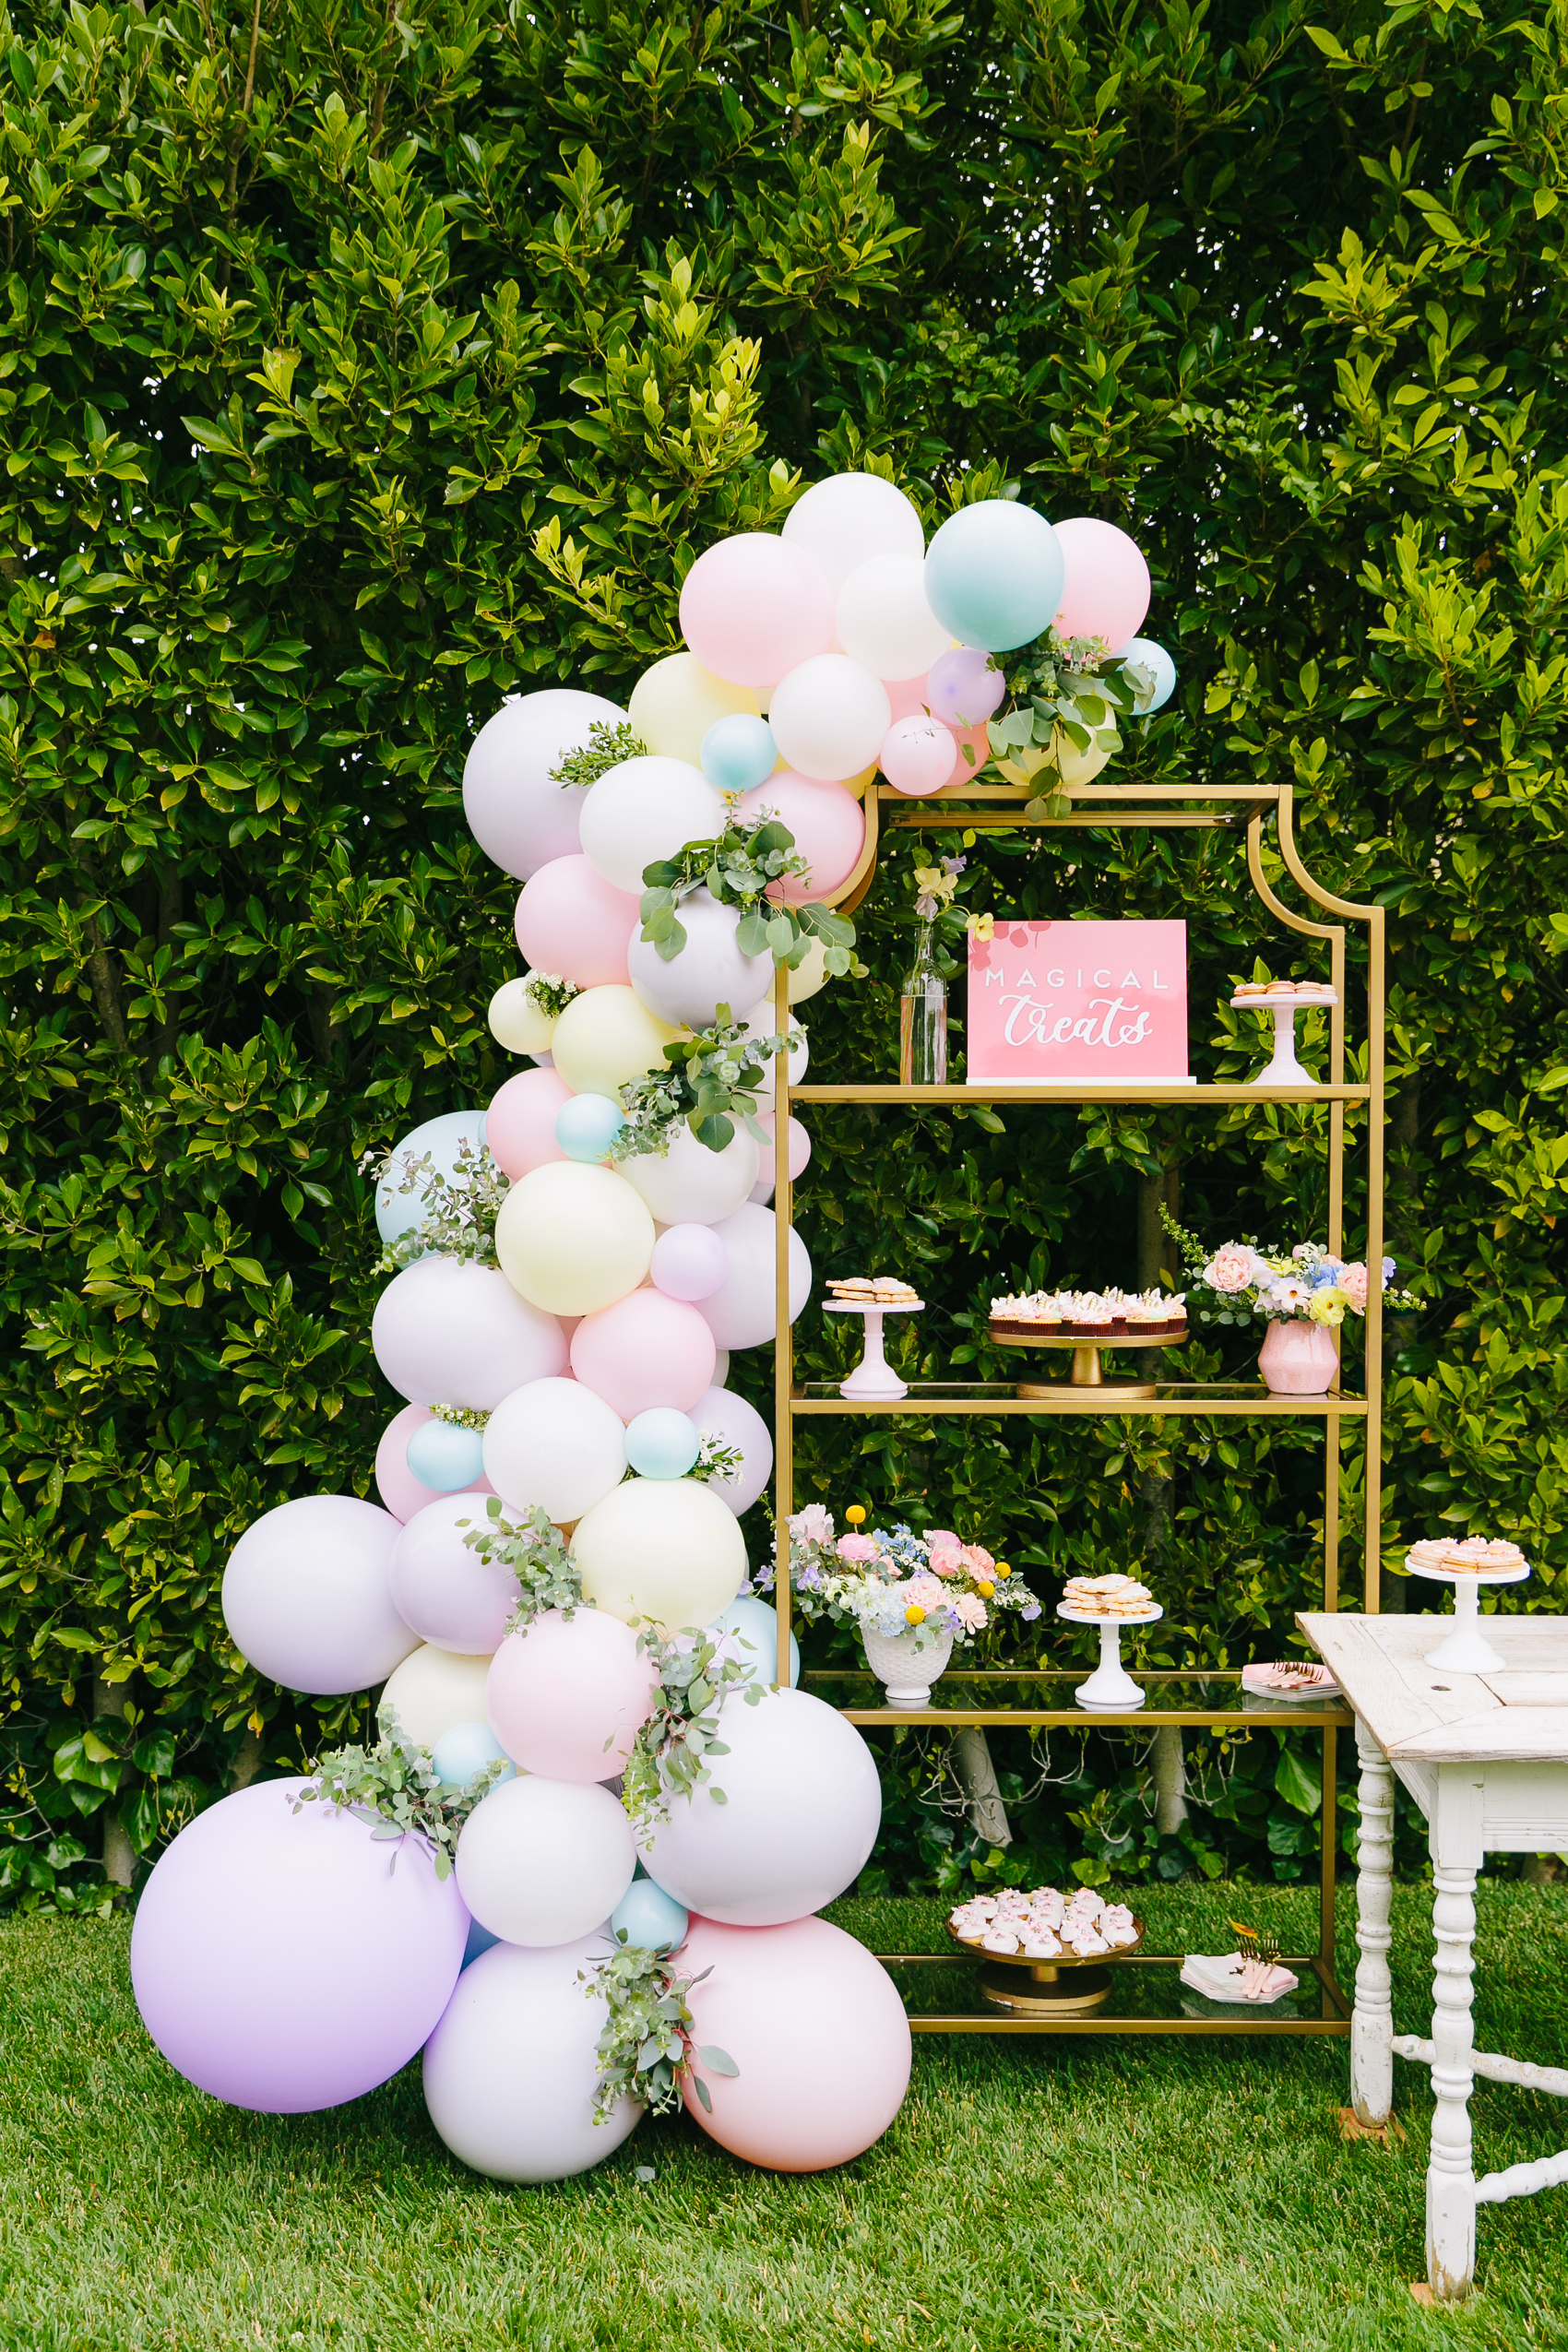 Los_Angeles_Family_Photographer_Luxury_Childrens_Party_Beverly_Hills_Unicorn_Birthday_Party-0002.jpg